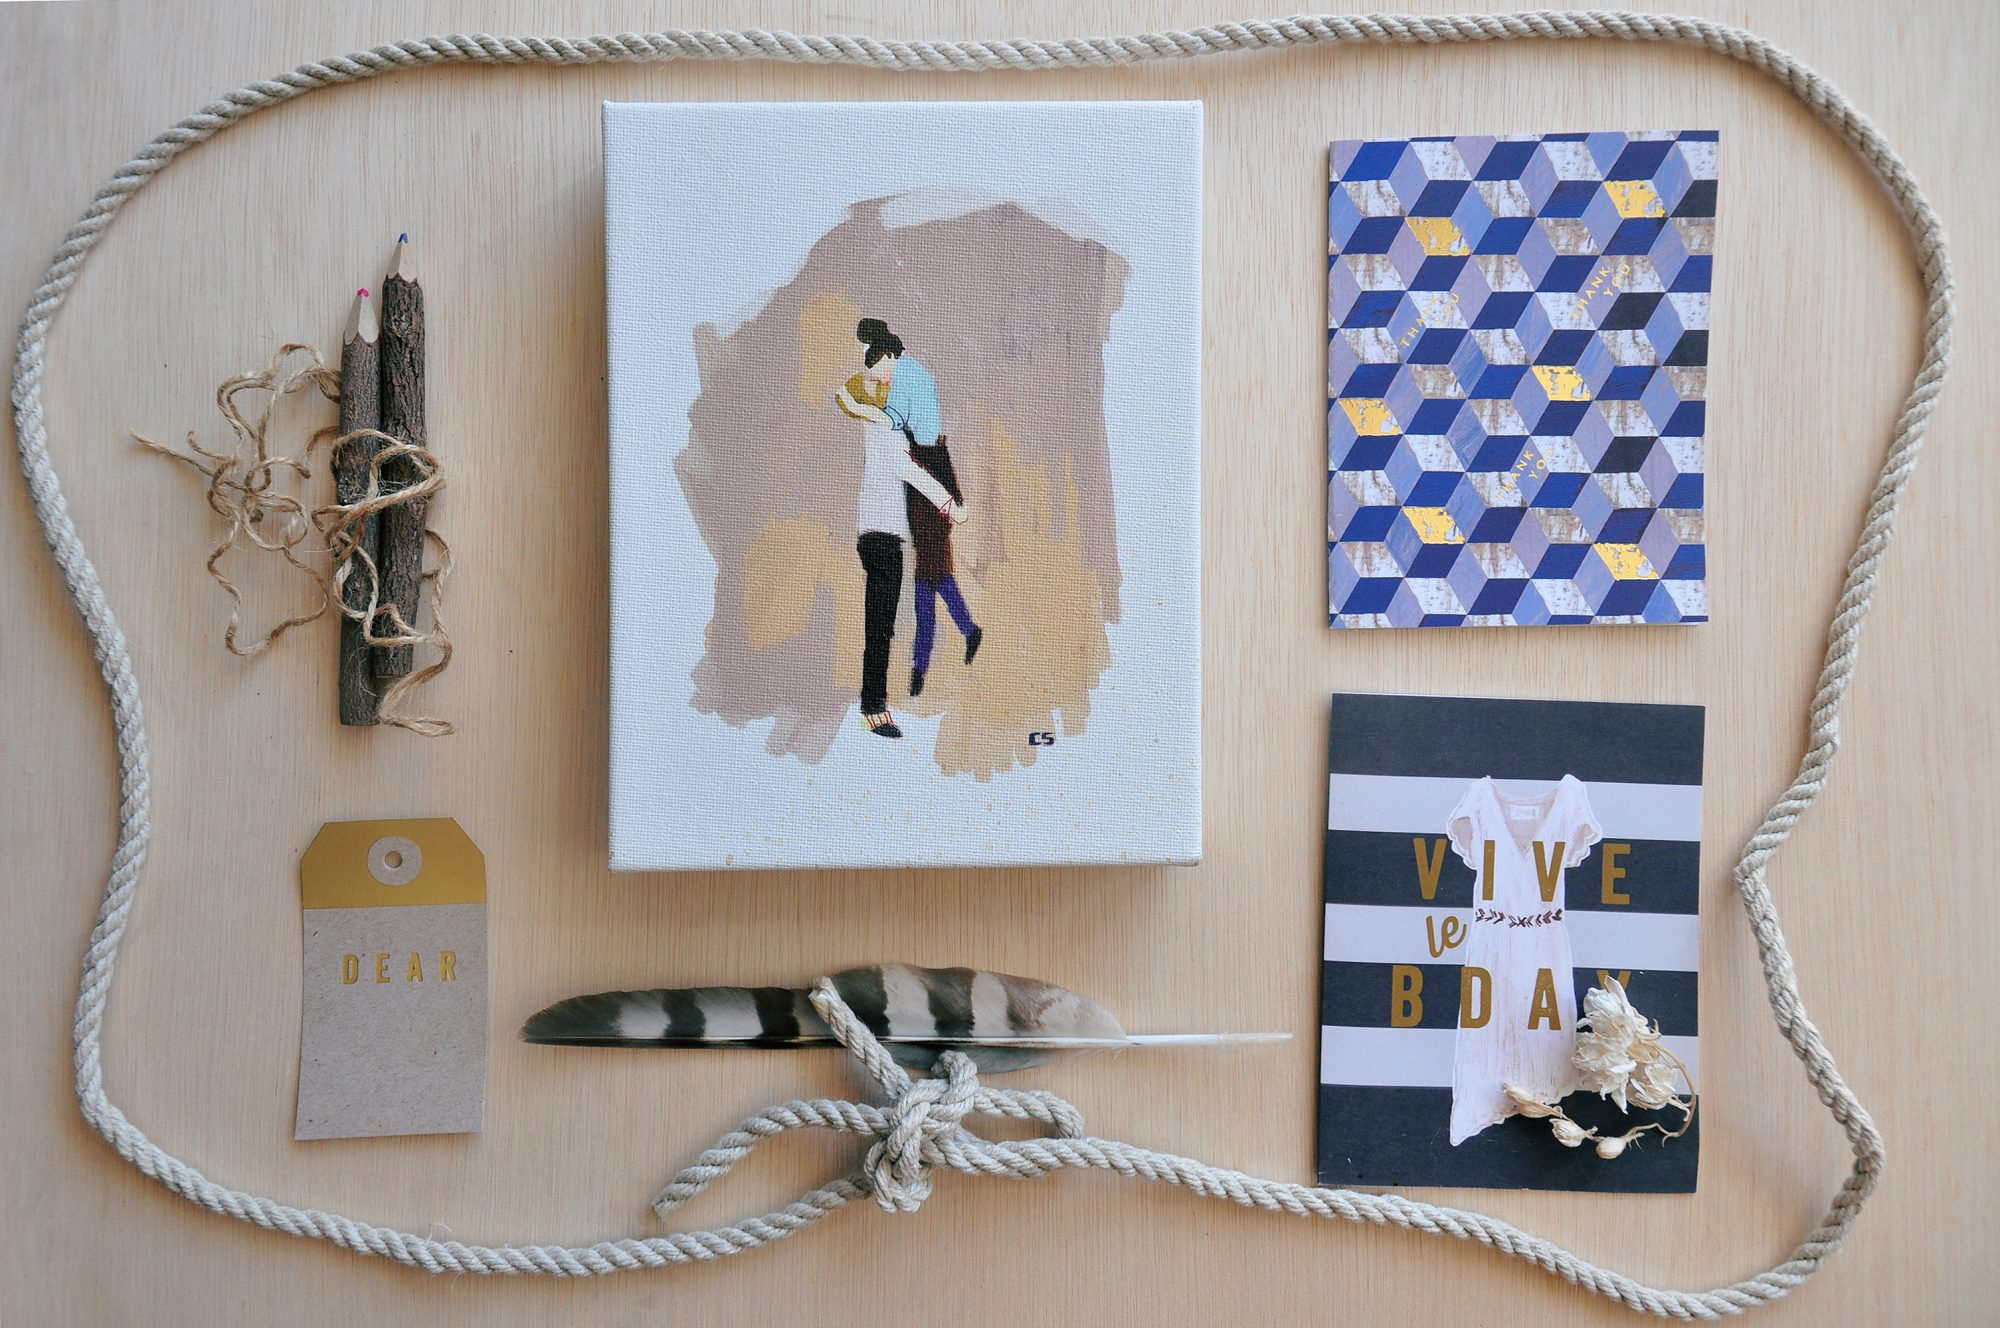 San Francisco Chic Gifts - LEAD